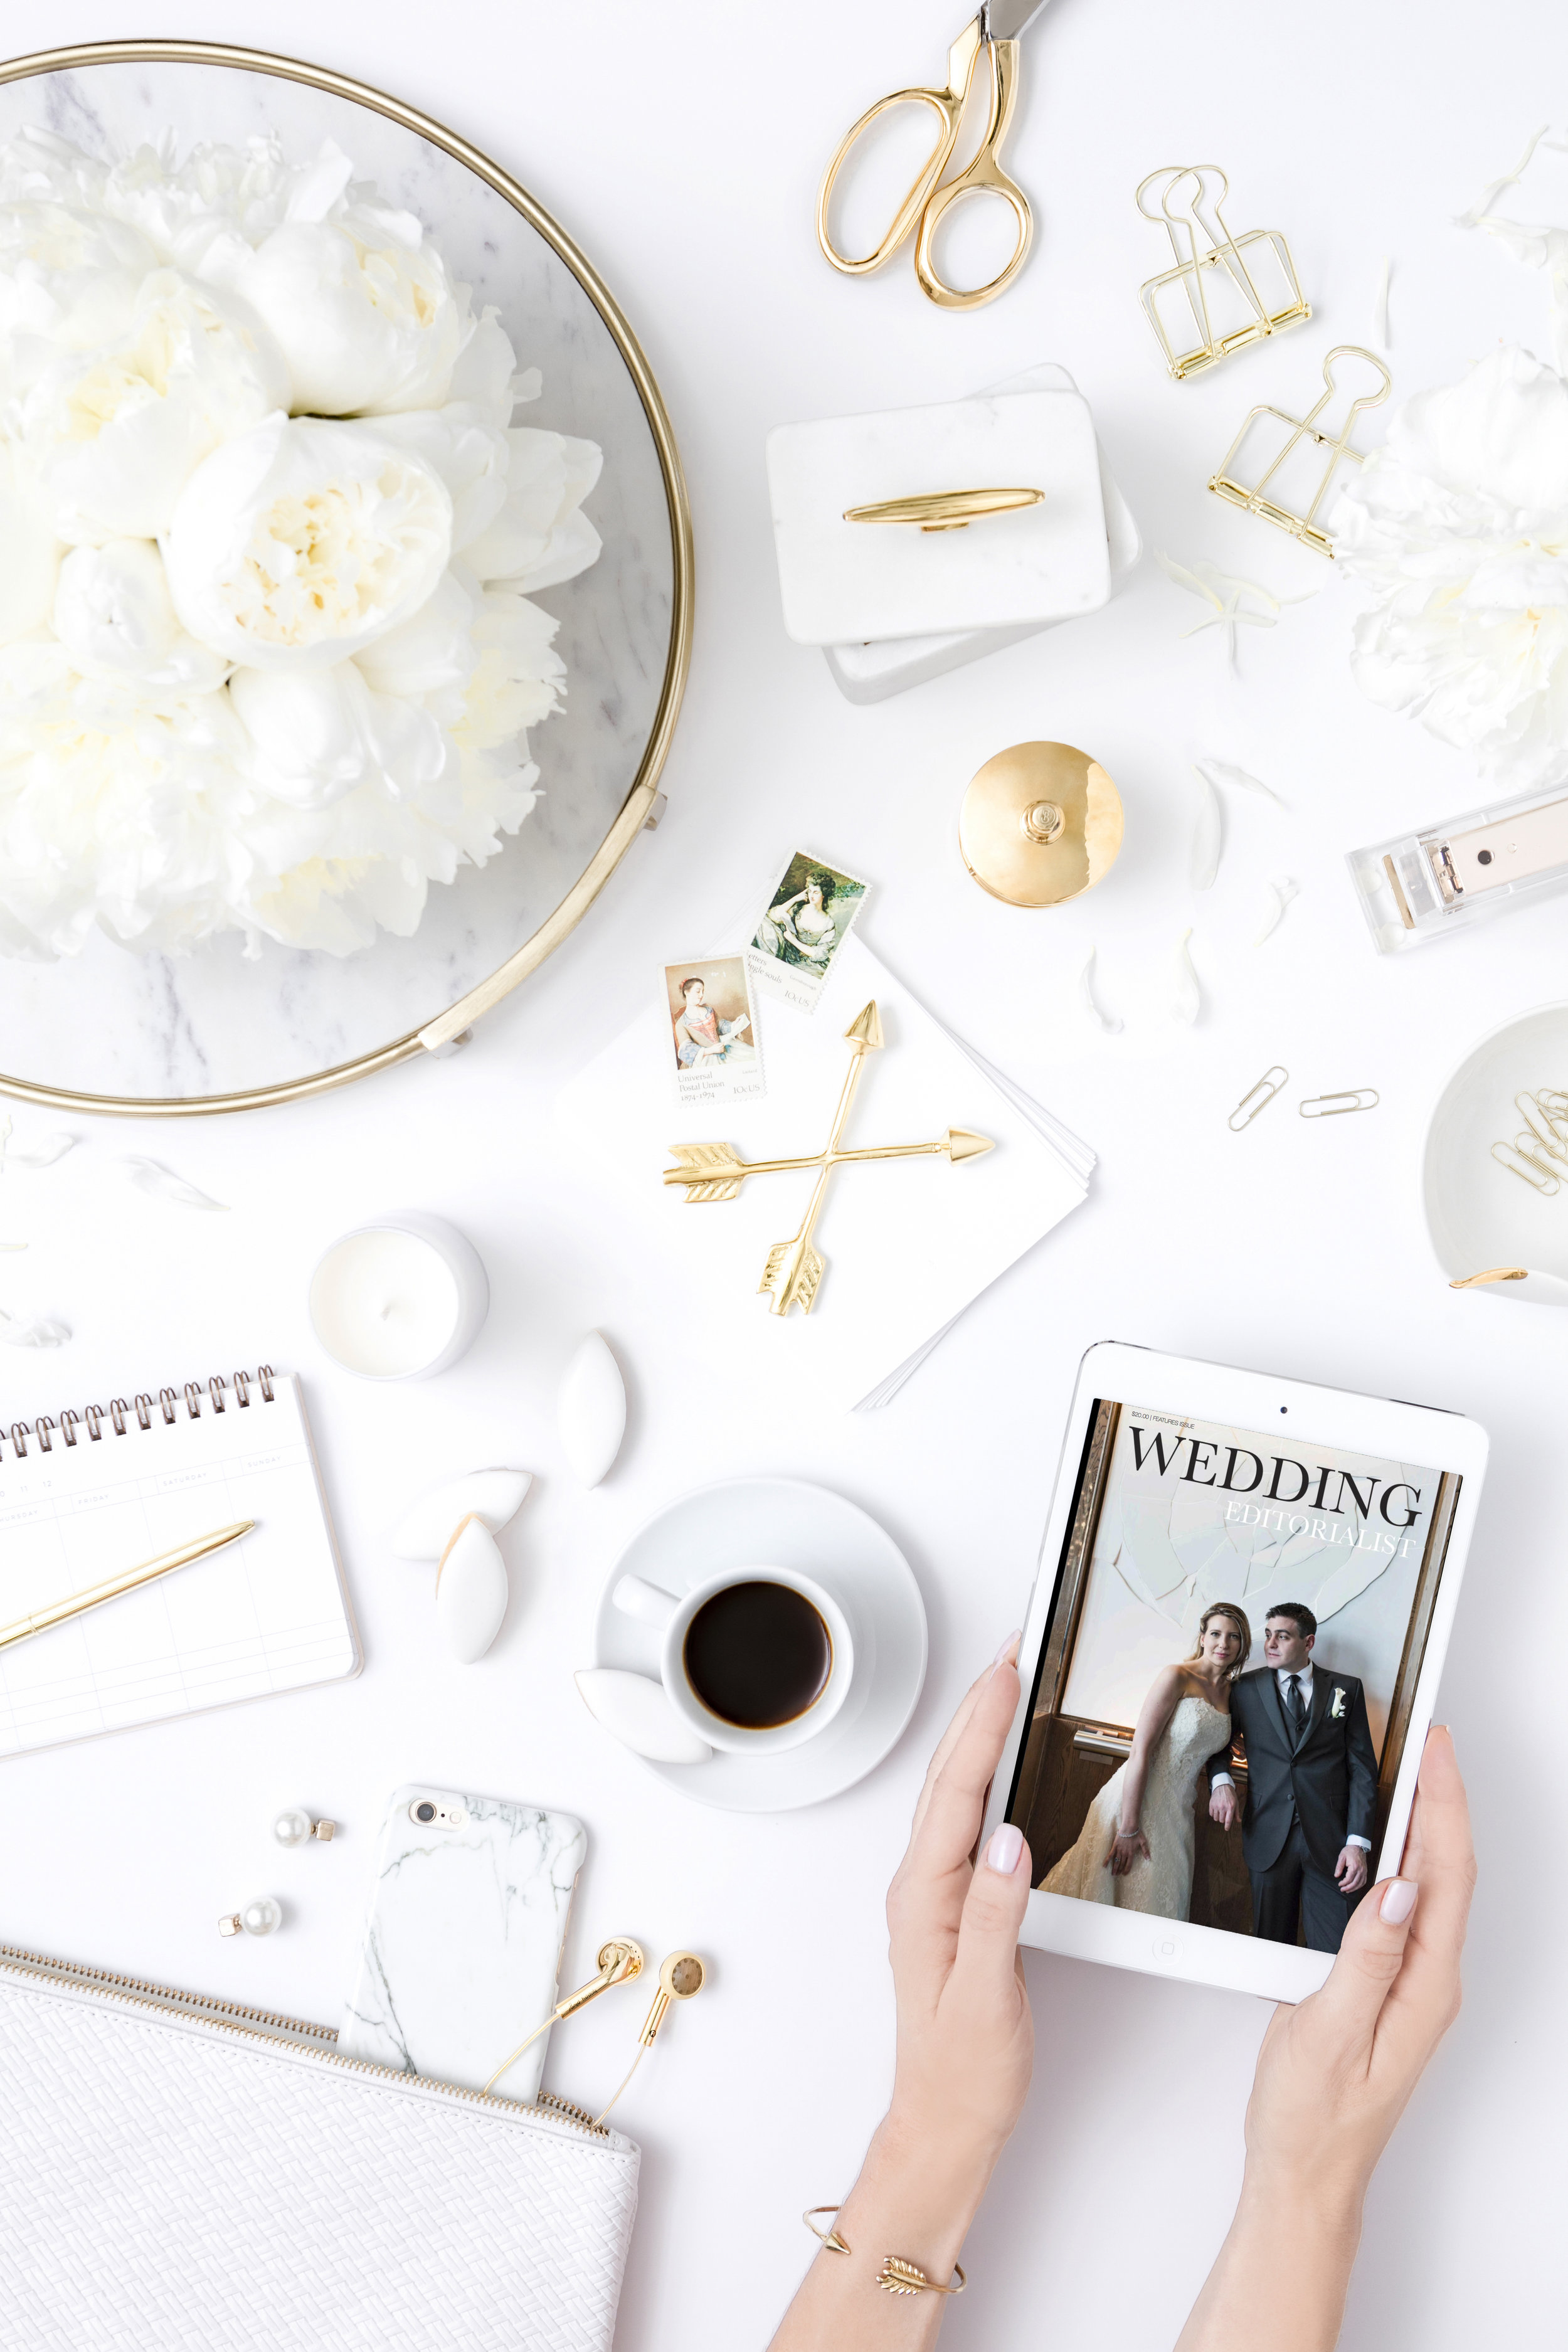 Couples can now hire an editor to create custom magazines dedicated to their wedding. Available online and in print, the Wedding Editorialist is a unique way to celebrate your wedding.